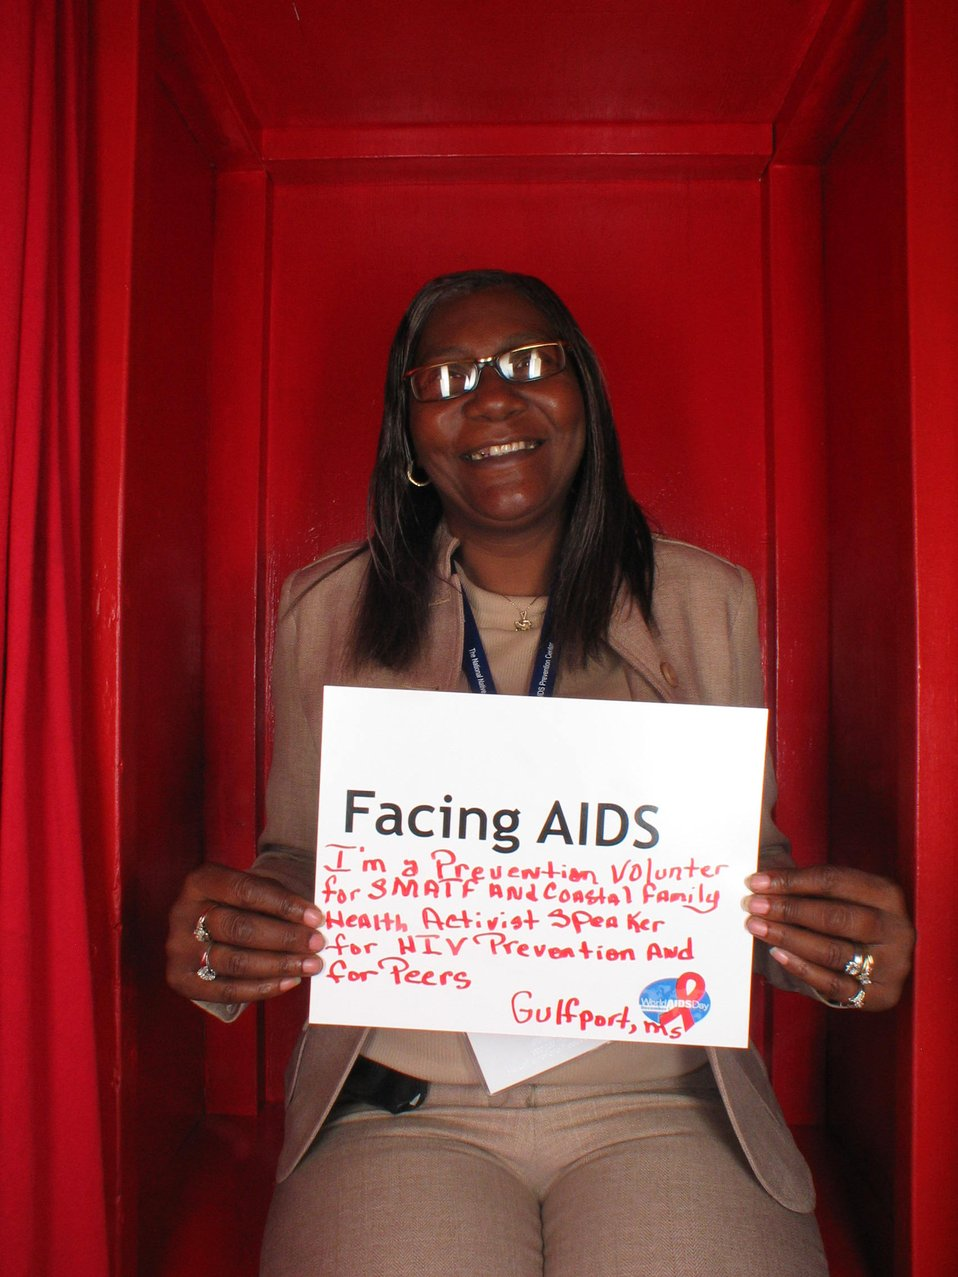 Facing AIDS I am prevention volunteer ... and speaker for HIV Prevention and for Peers.